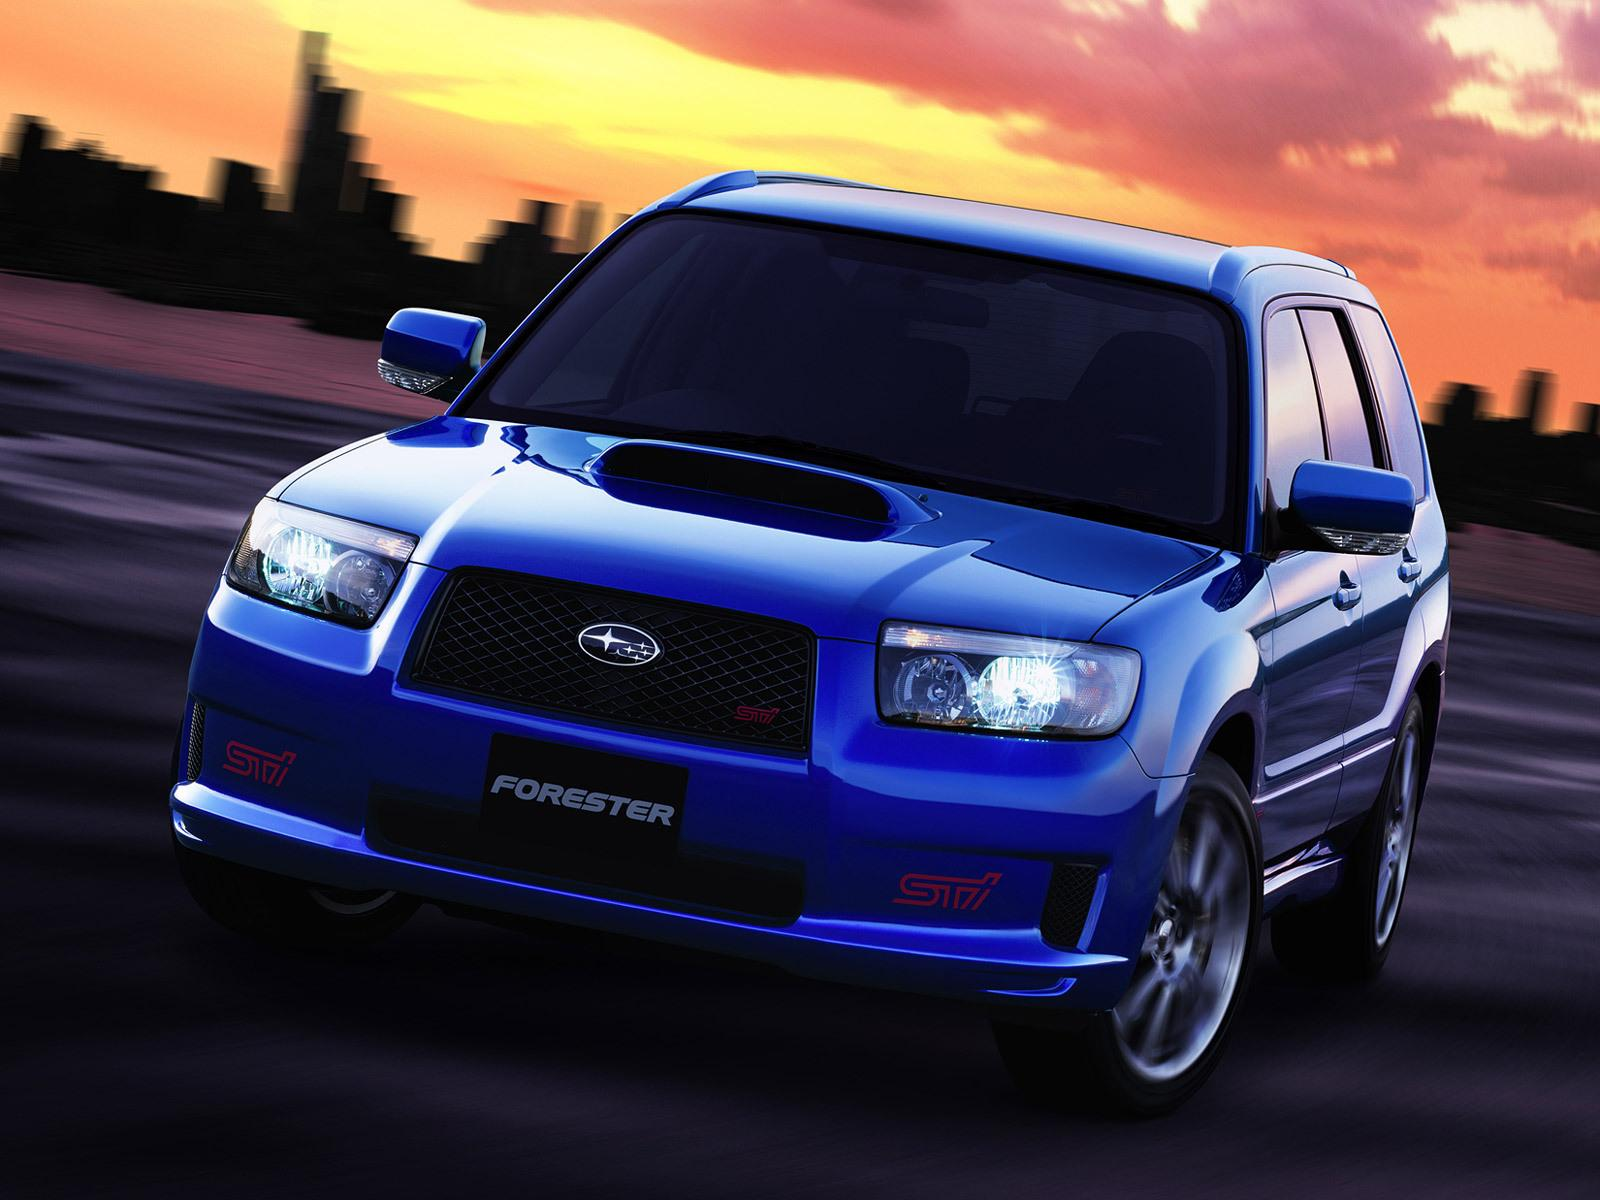 Pimped Subaru Forester >> Road Car Pictures: 2005 Subaru Forester STI